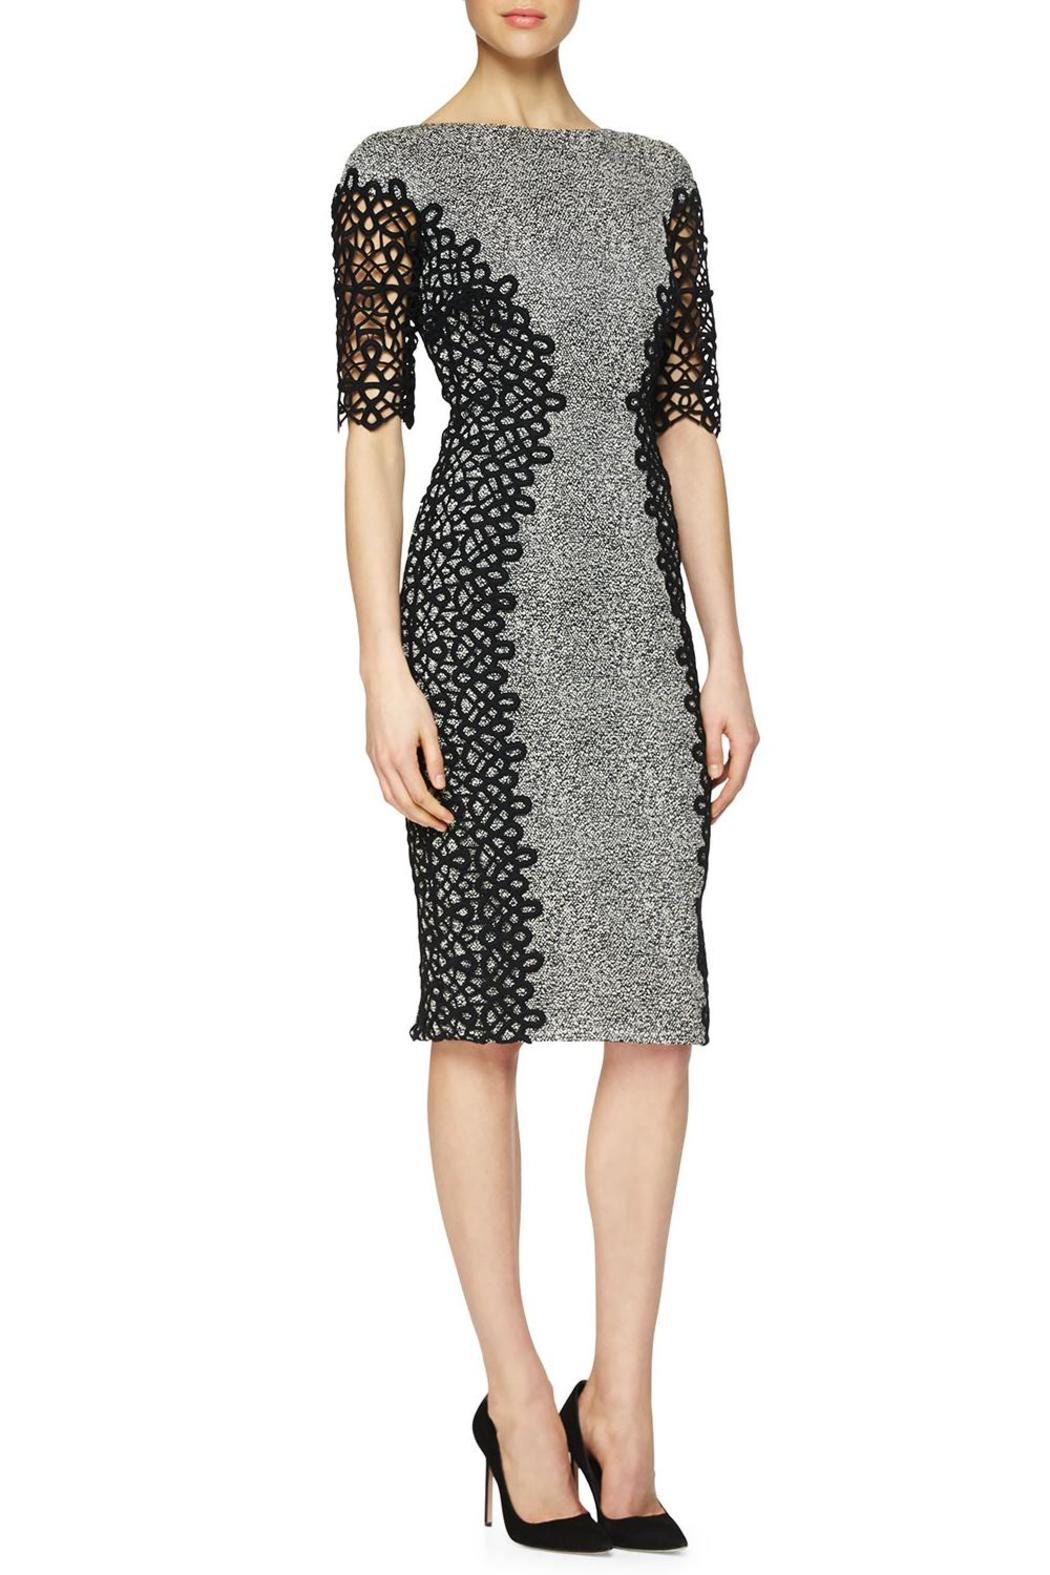 Lela Rose  Lace Placed Dress - Main Image